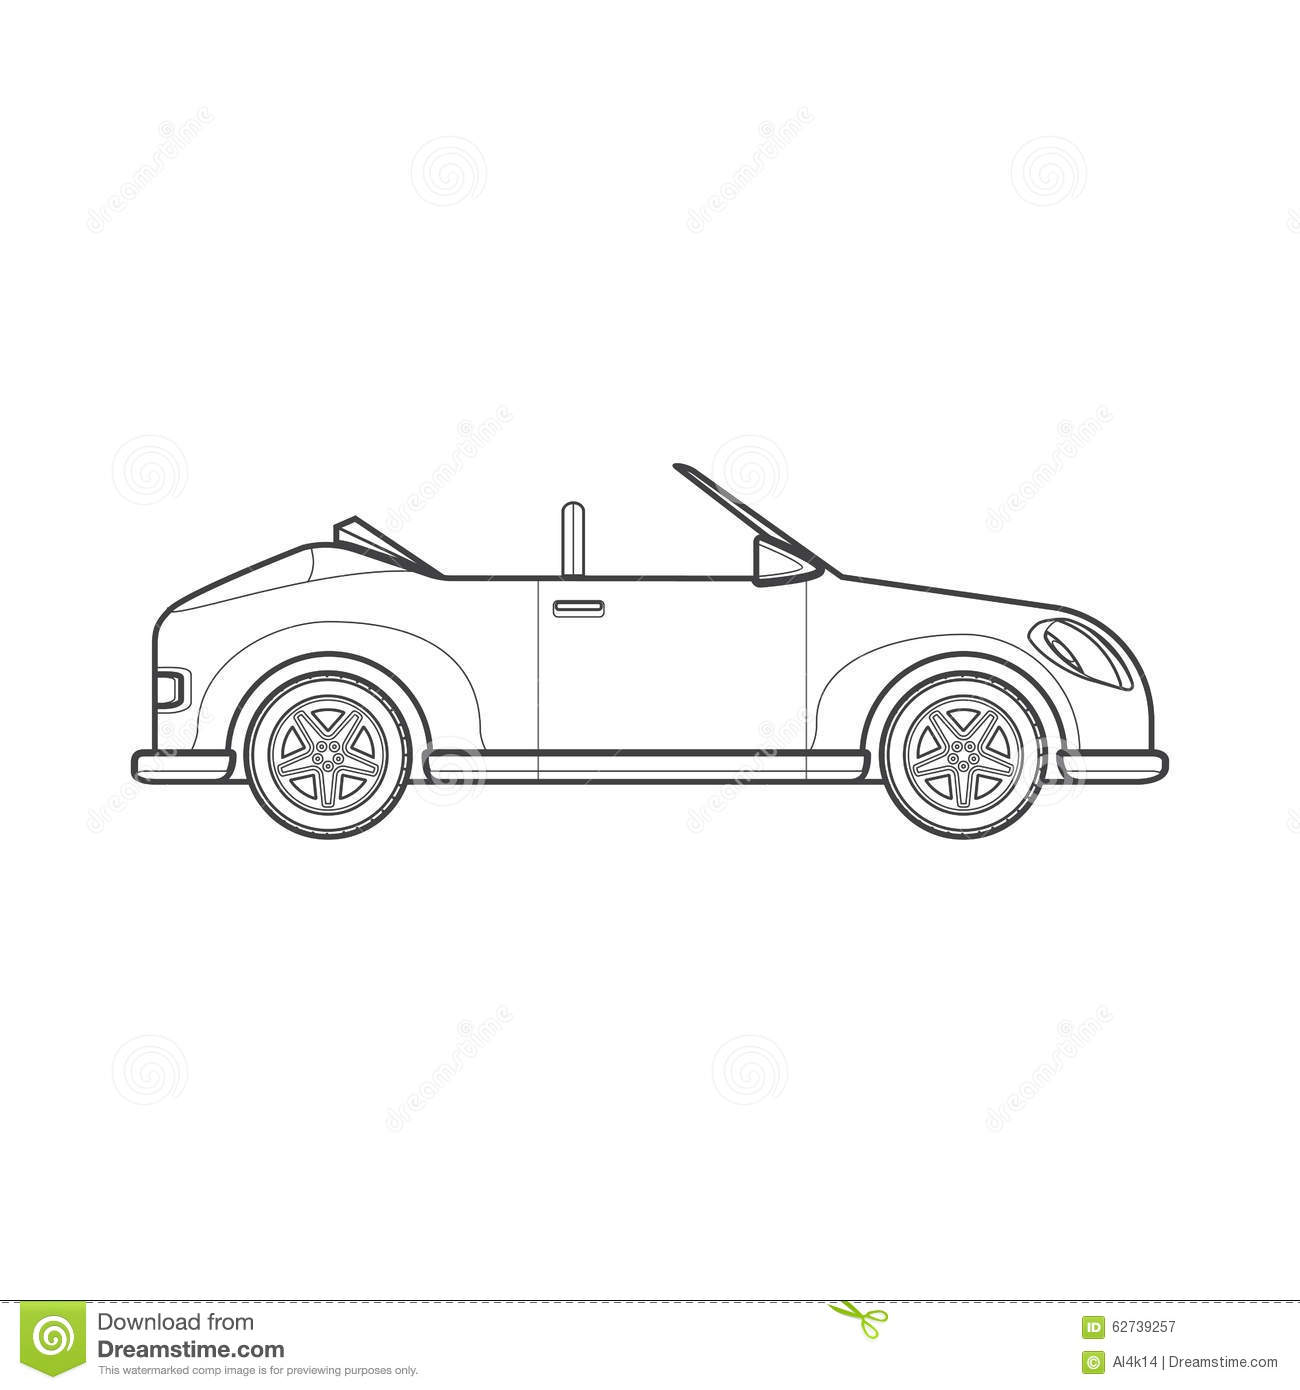 Outline Cabriolet Roadster Car Body Style Illustration